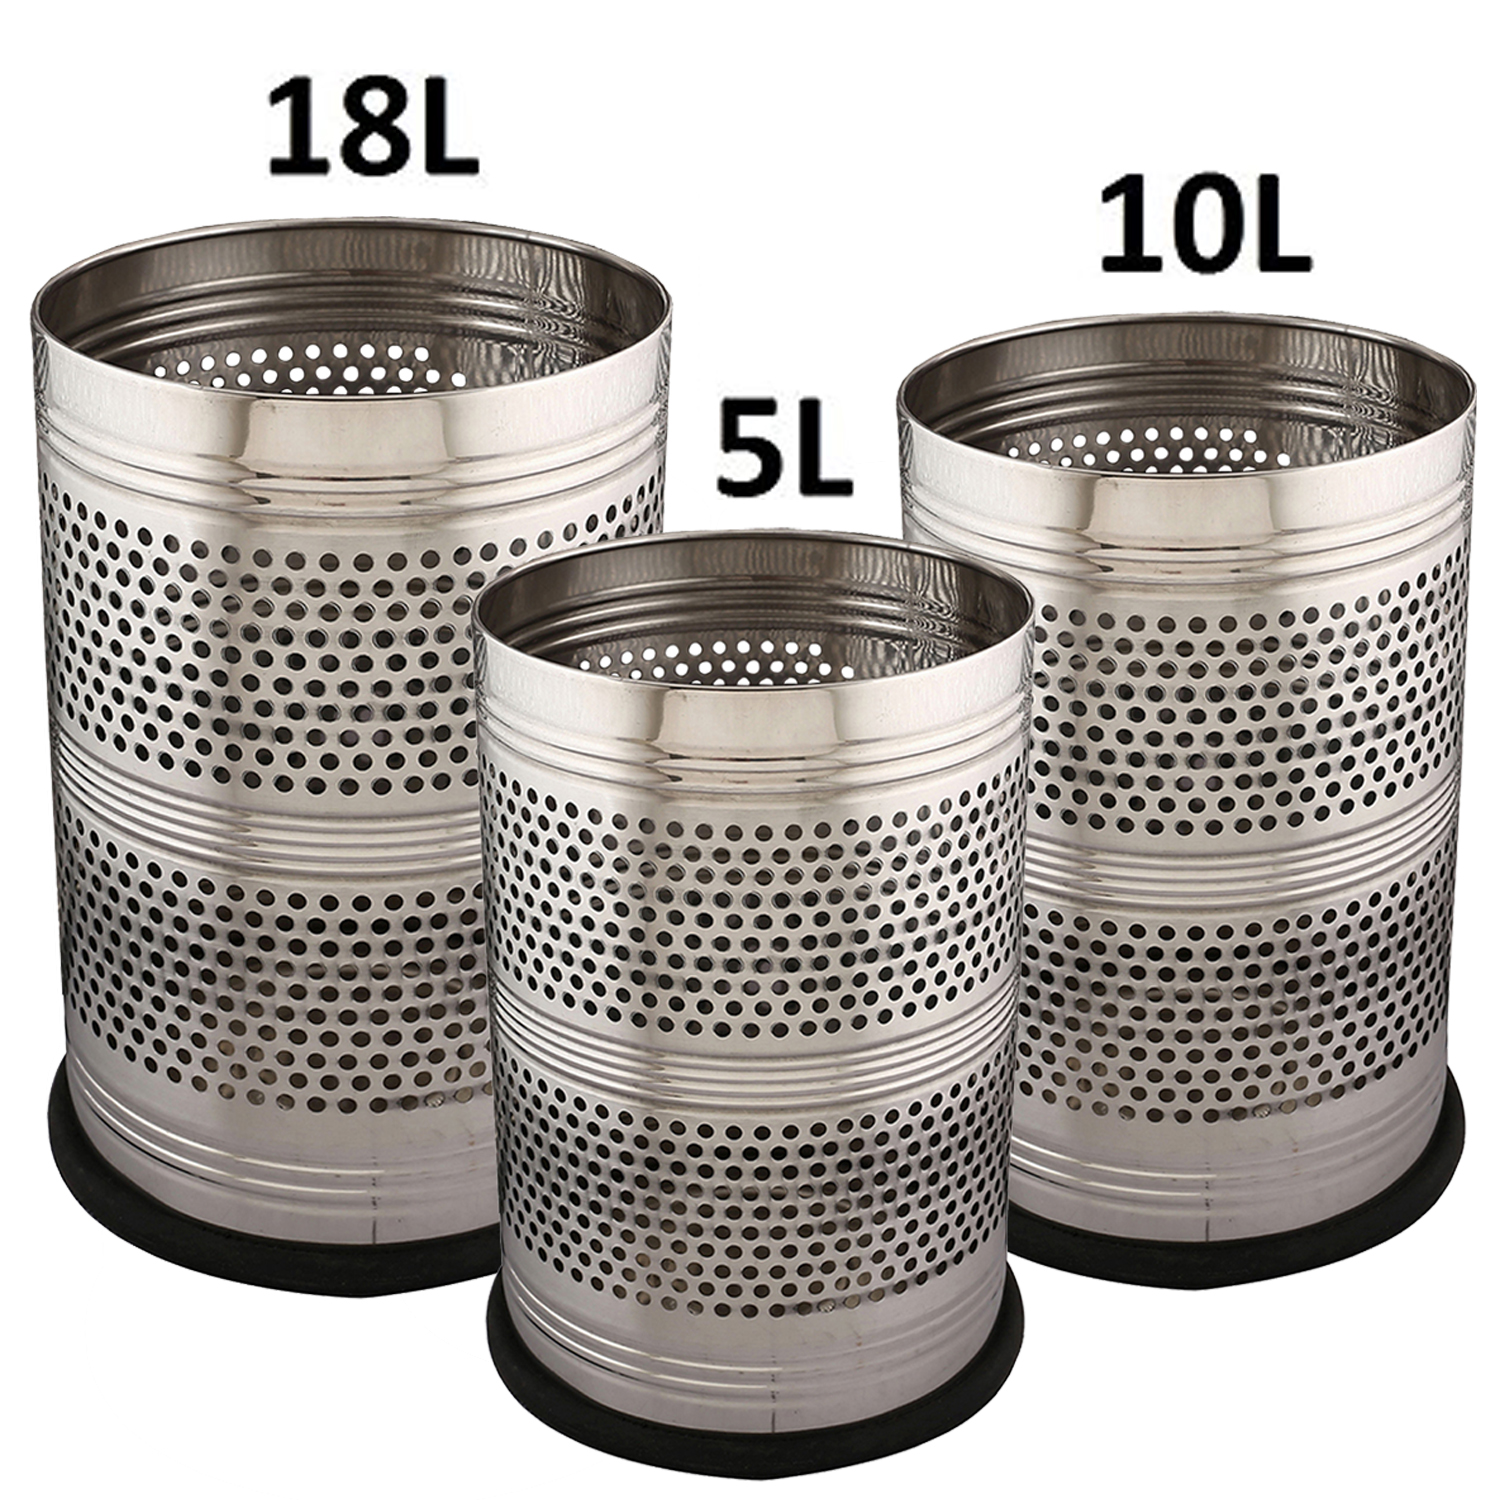 Kuber Industries Stainless Steel 3 Pieces Big, Medium & Small Size Garbage Dustbin Set (Silver)-CTKTC3630